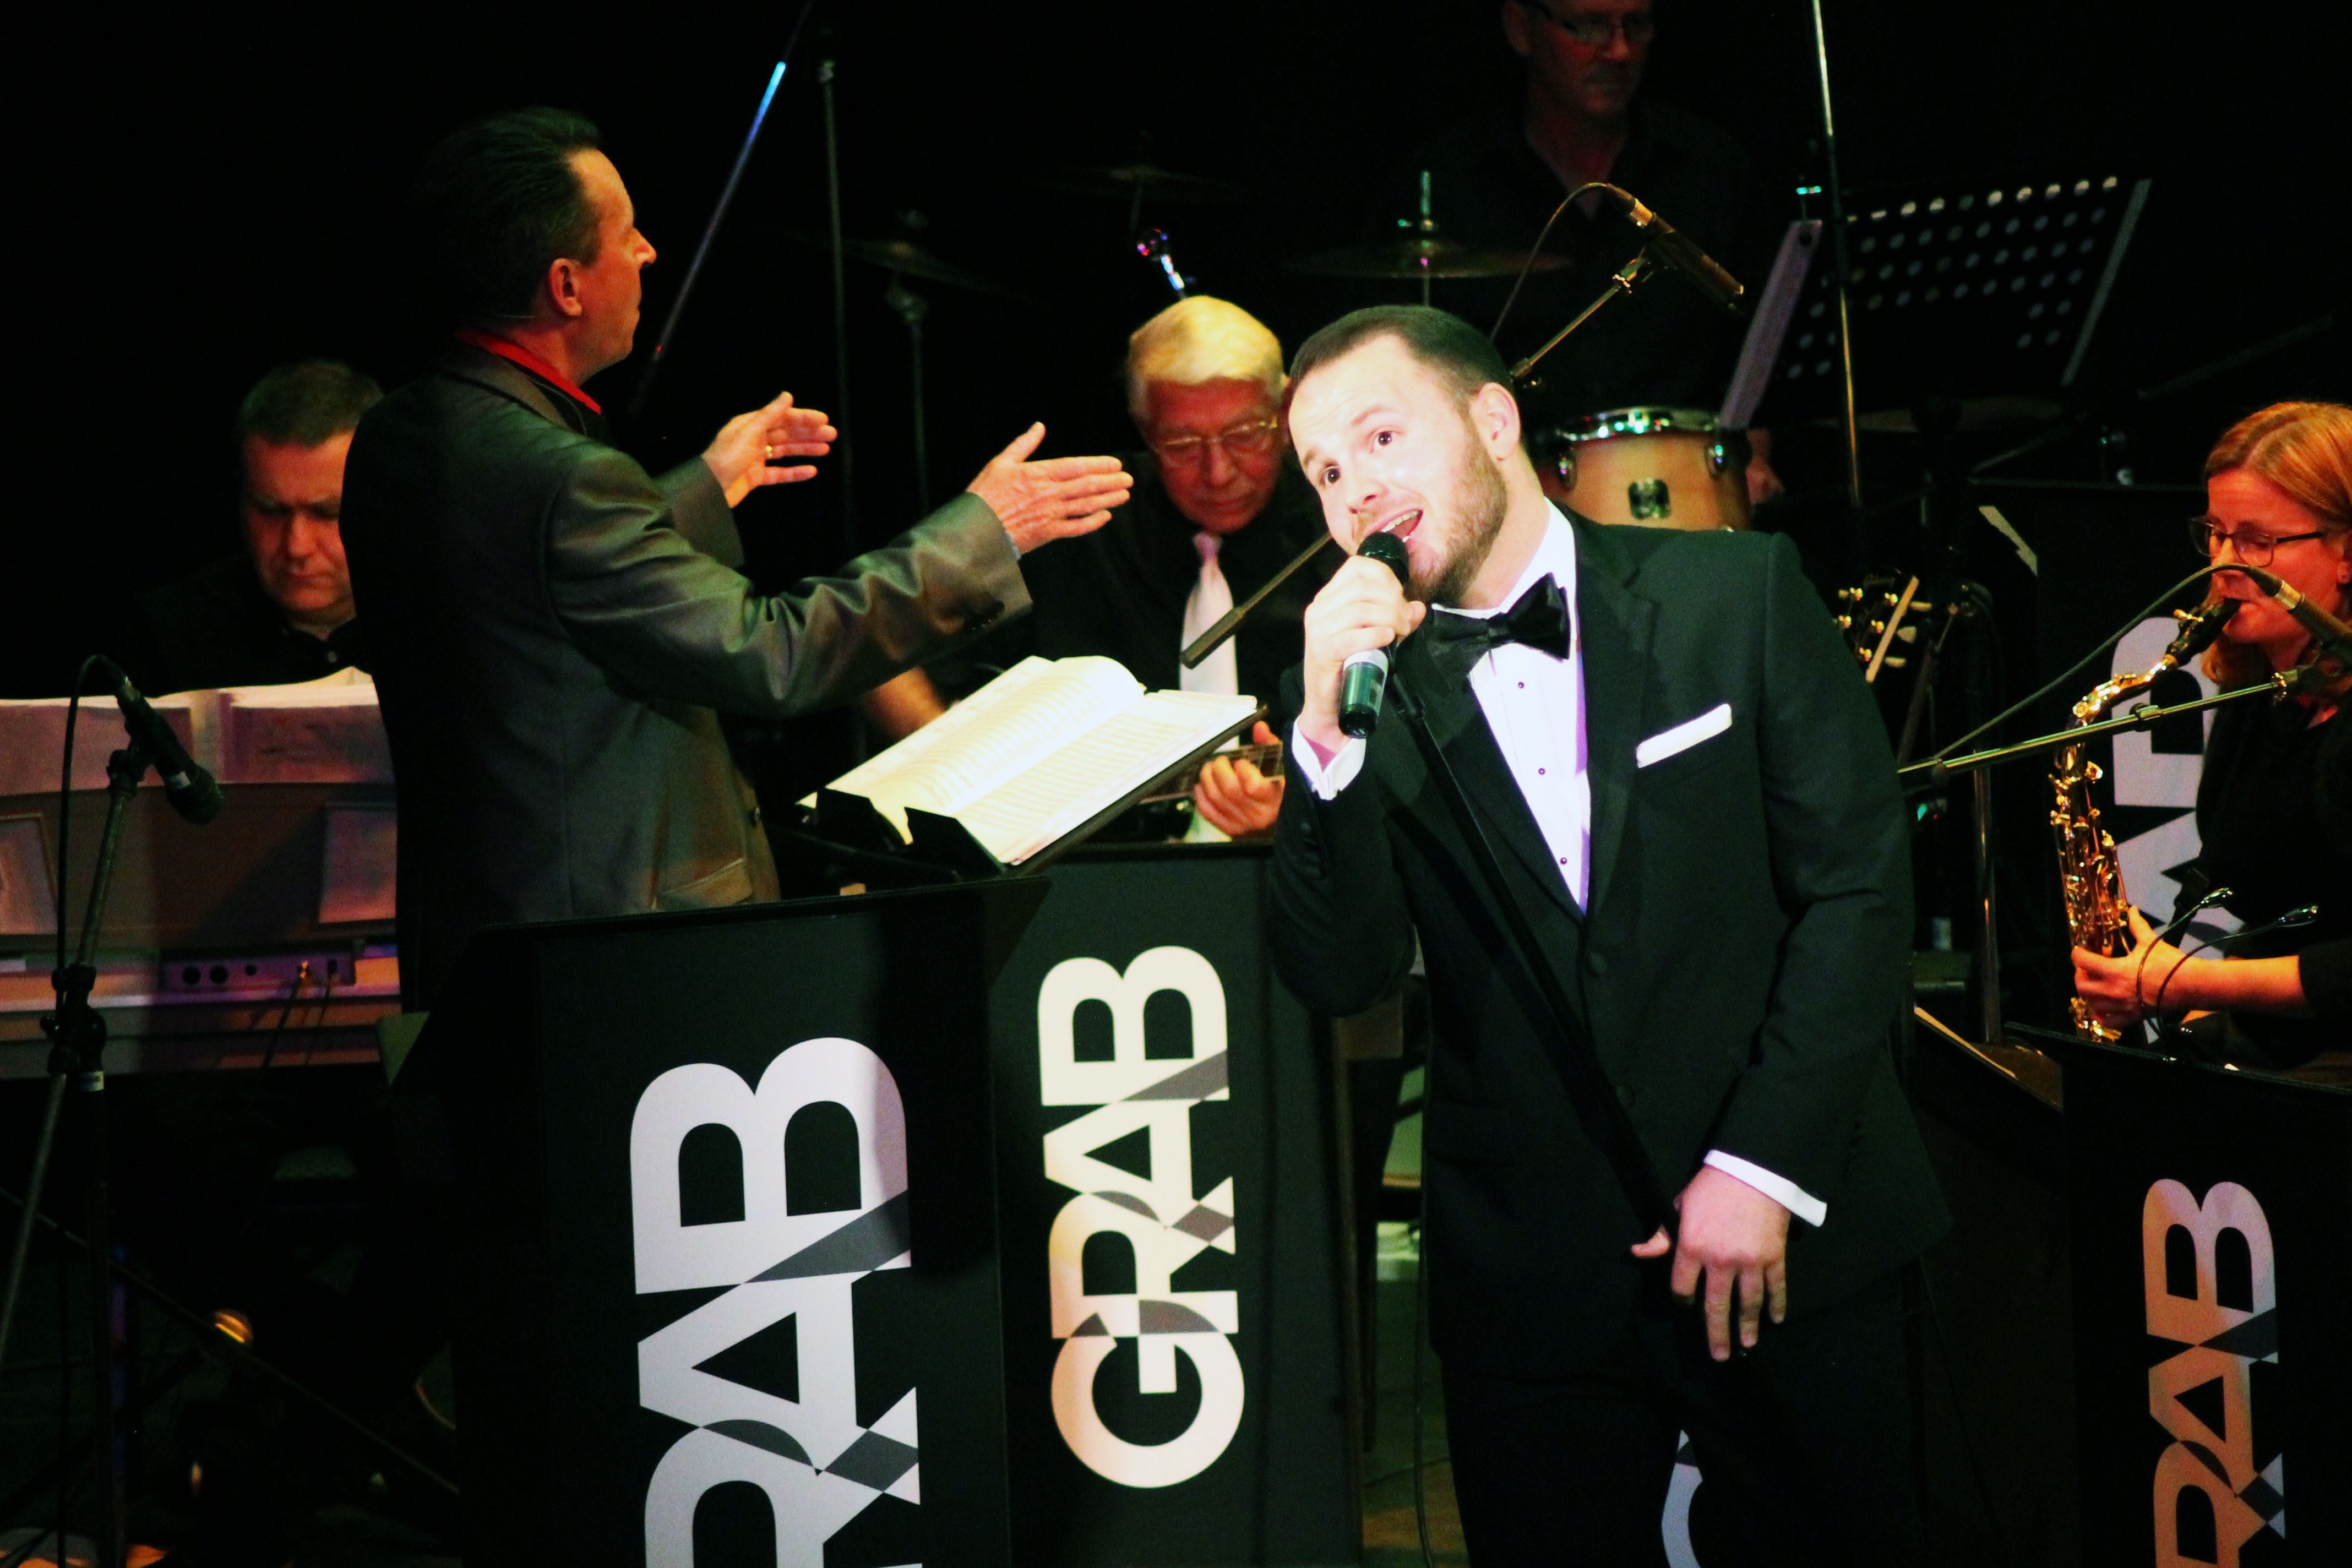 GRAB's Big Band Bash 2.0